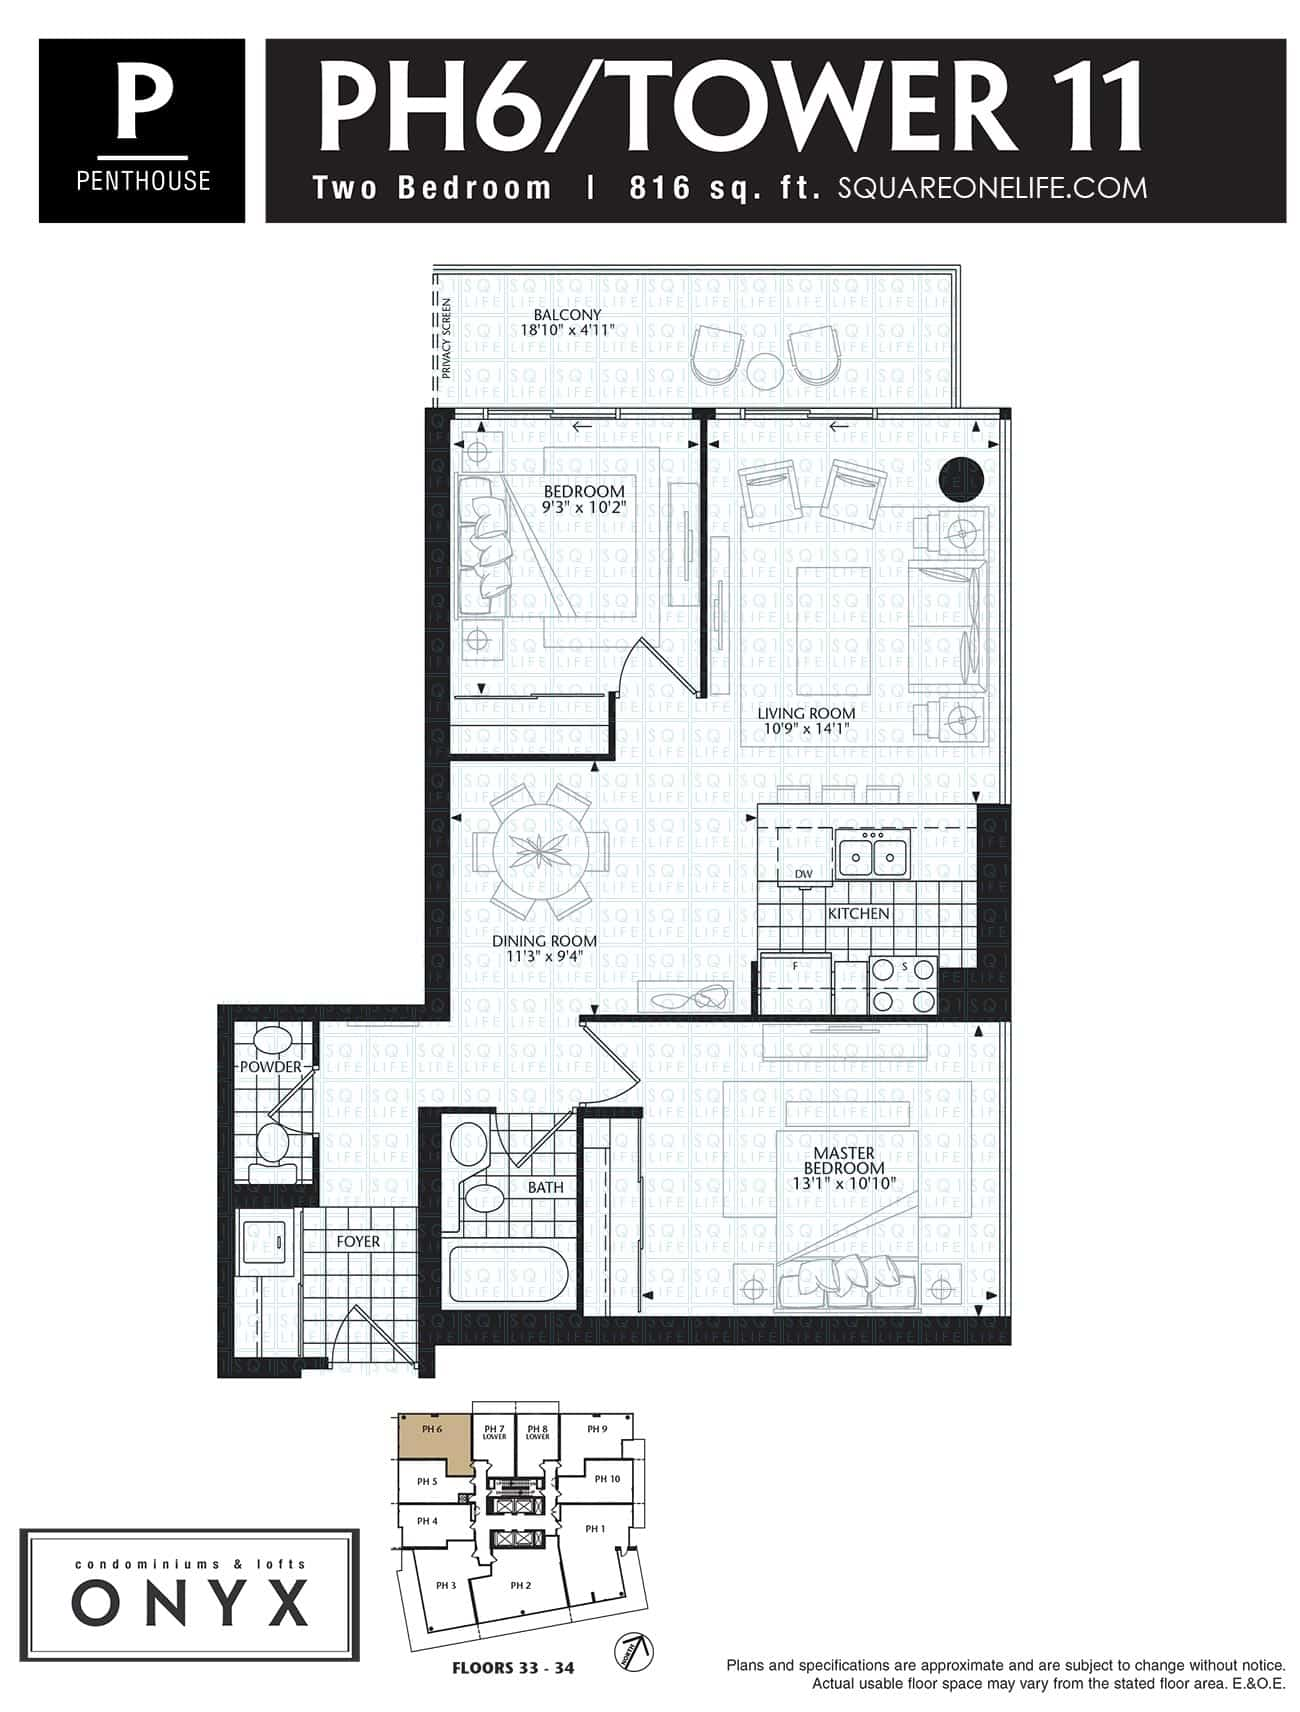 223-Webb-Dr-Onyx-Condo-Floorplan-PH6-2-Bed onyx condo Onyx Condo 223 Webb Dr Onyx Condo Floorplan PH6 2 Bed